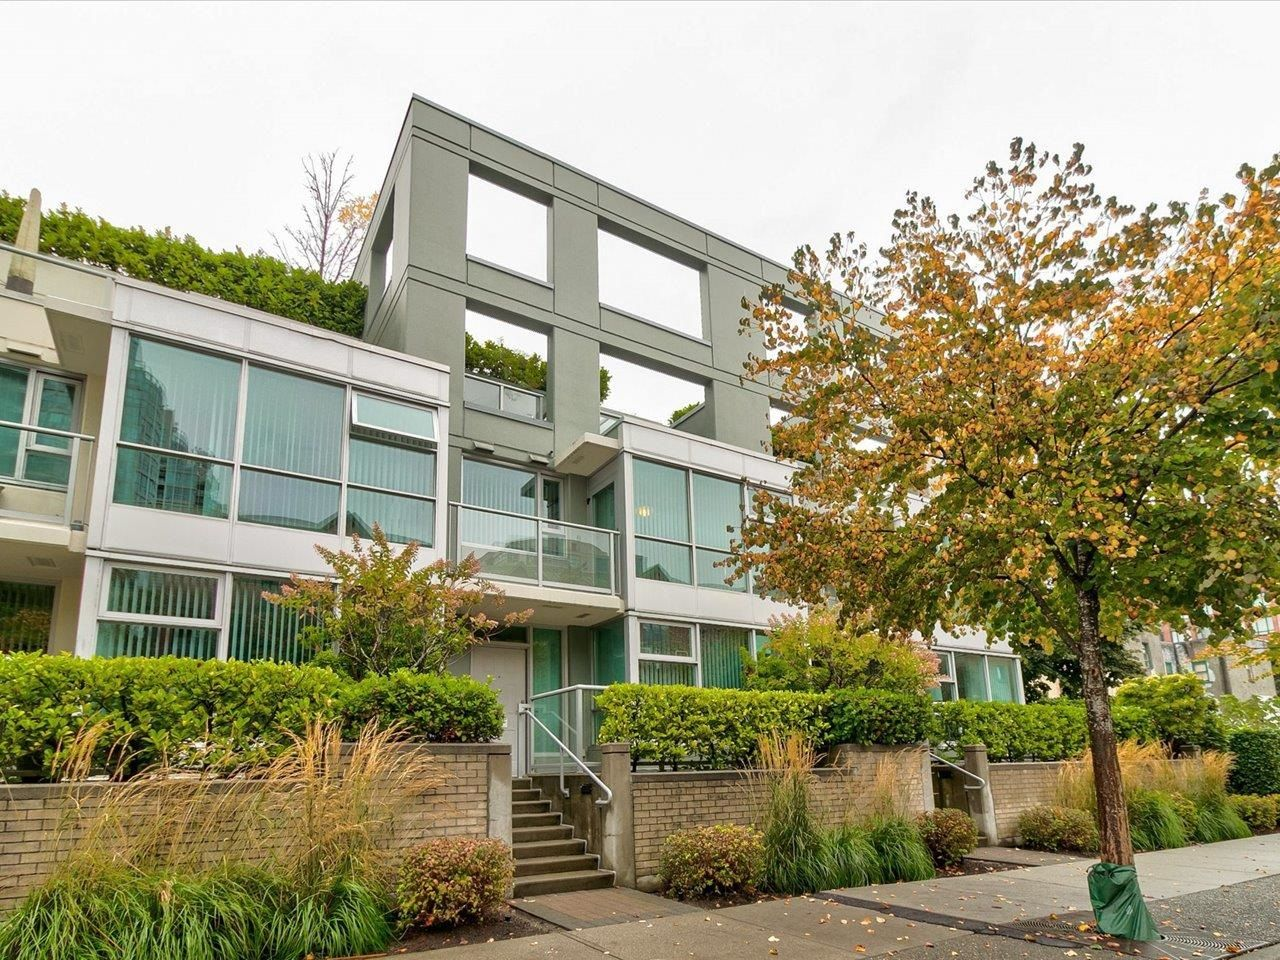 """Main Photo: 169 MILROSS Avenue in Vancouver: Downtown VE Townhouse for sale in """"Creekside at Citygate"""" (Vancouver East)  : MLS®# R2622901"""